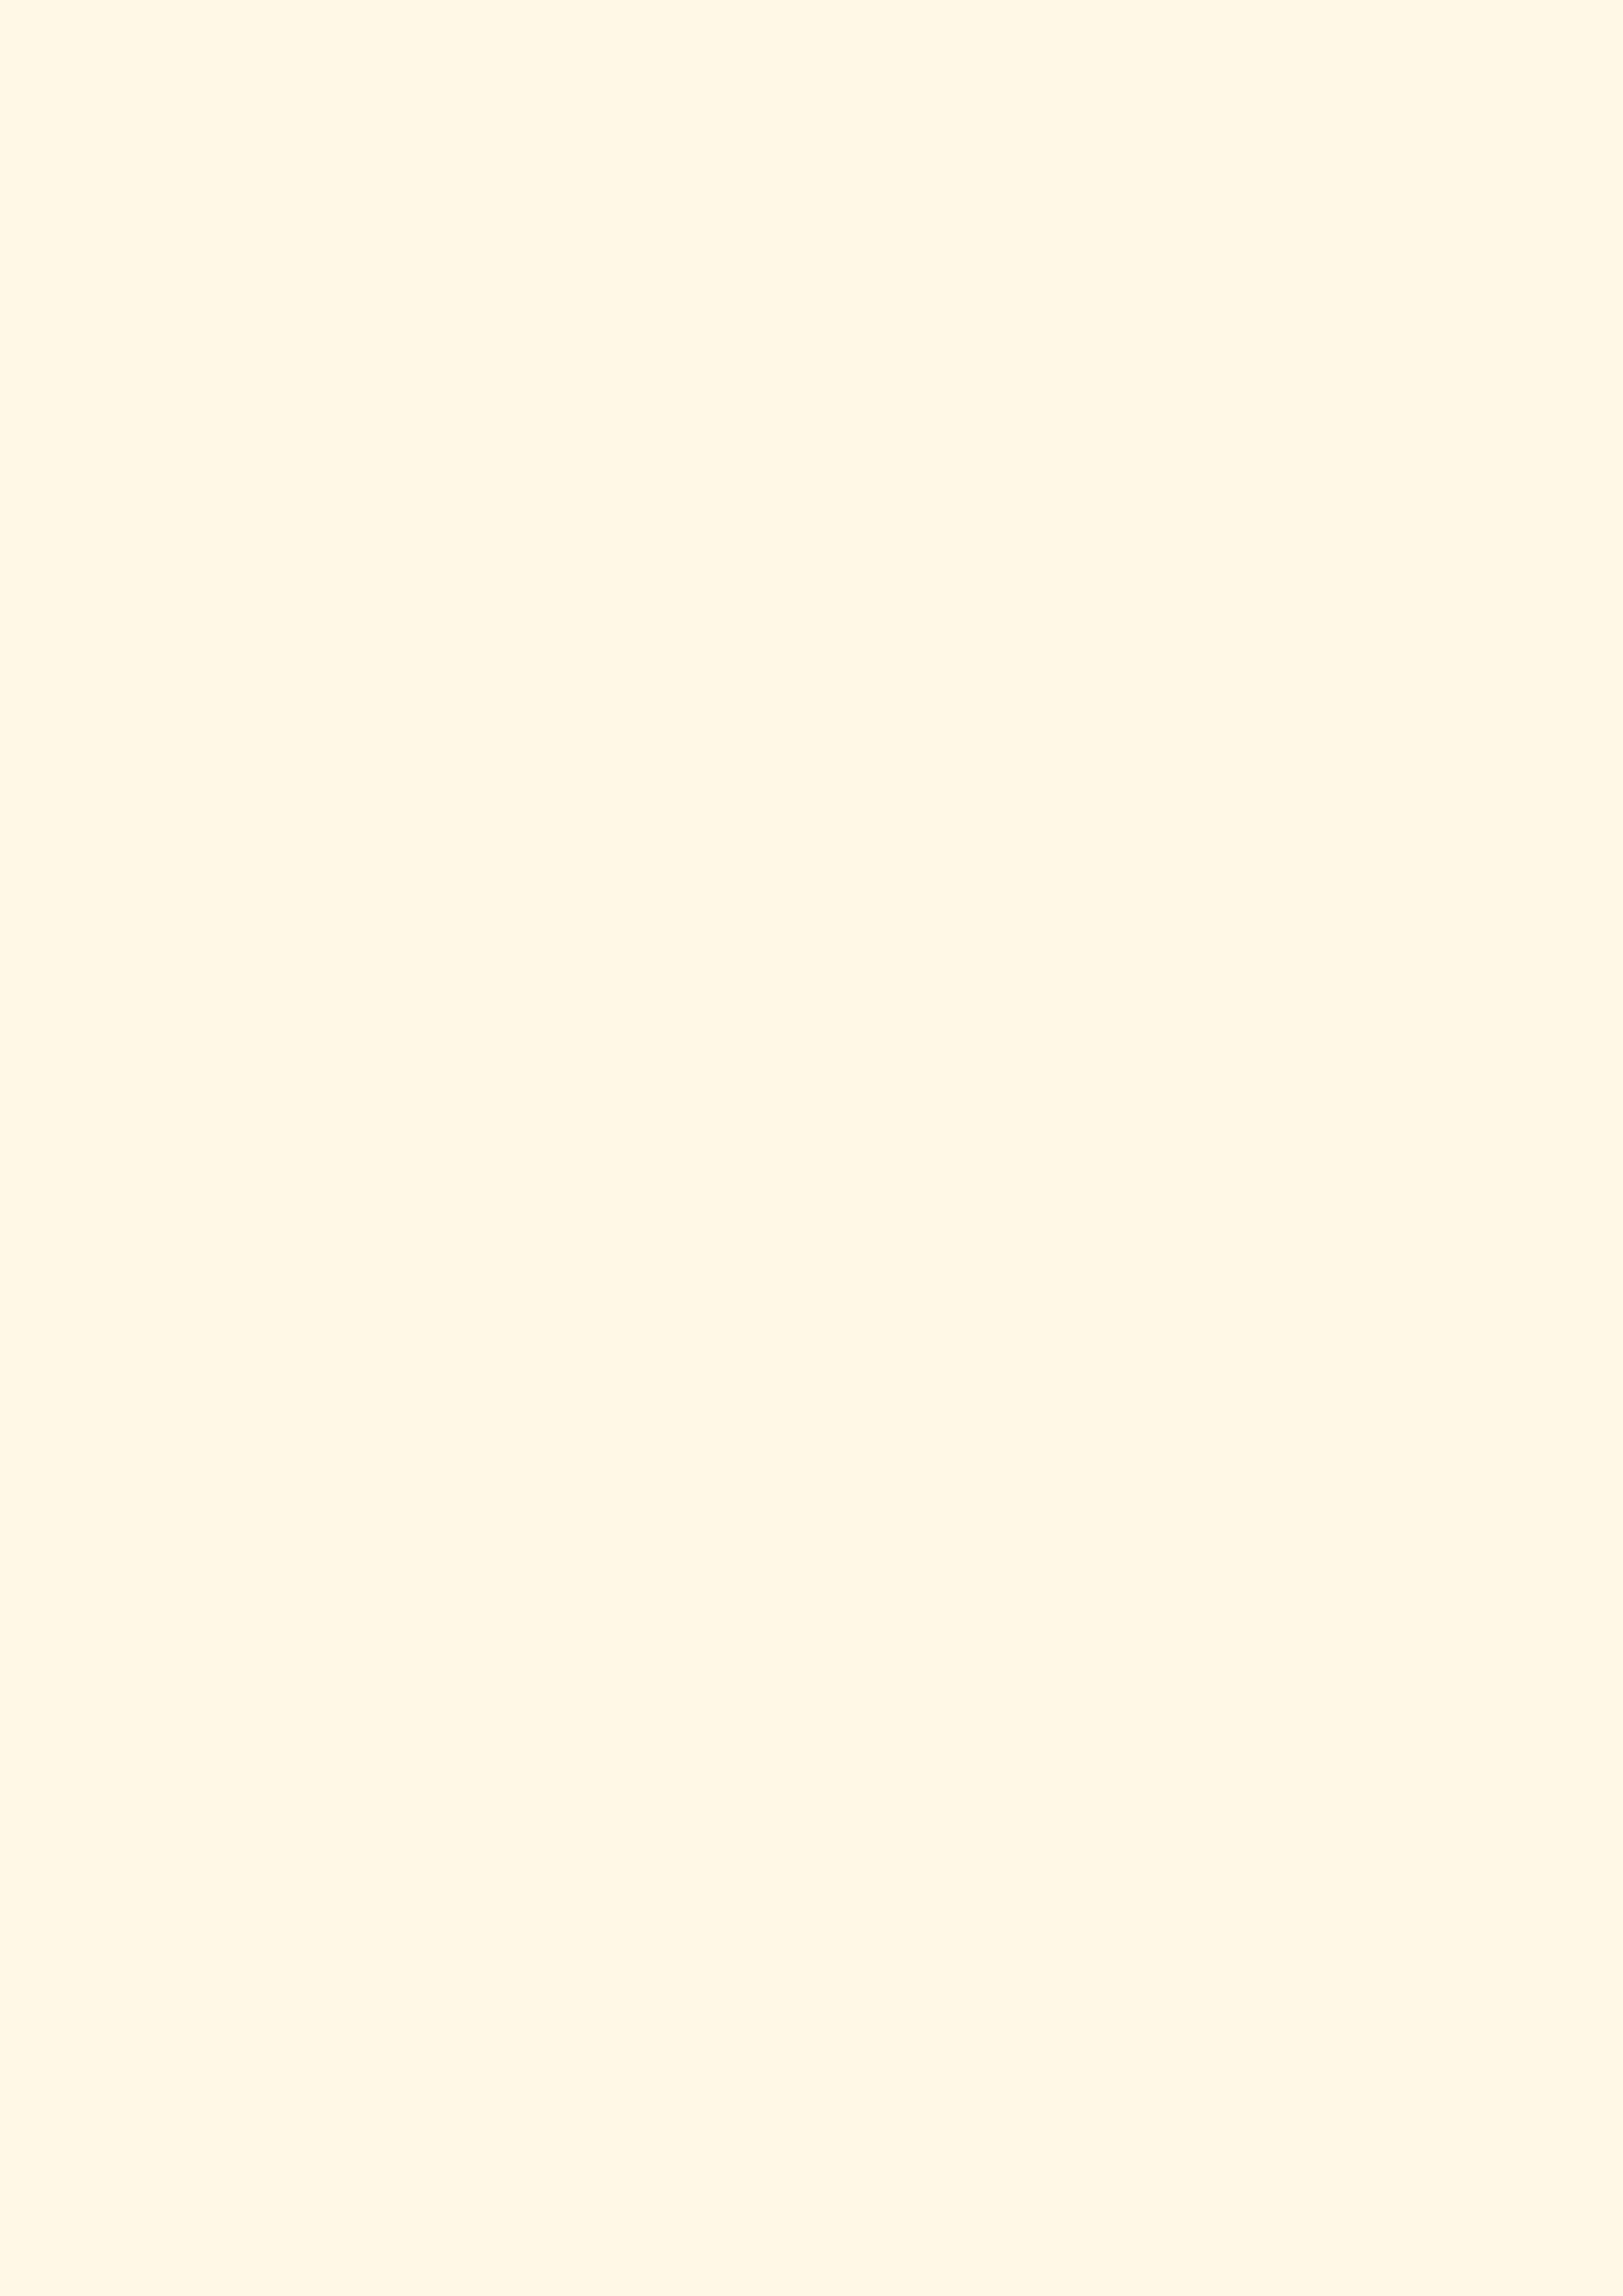 2480x3508 Cosmic Latte Solid Color Background